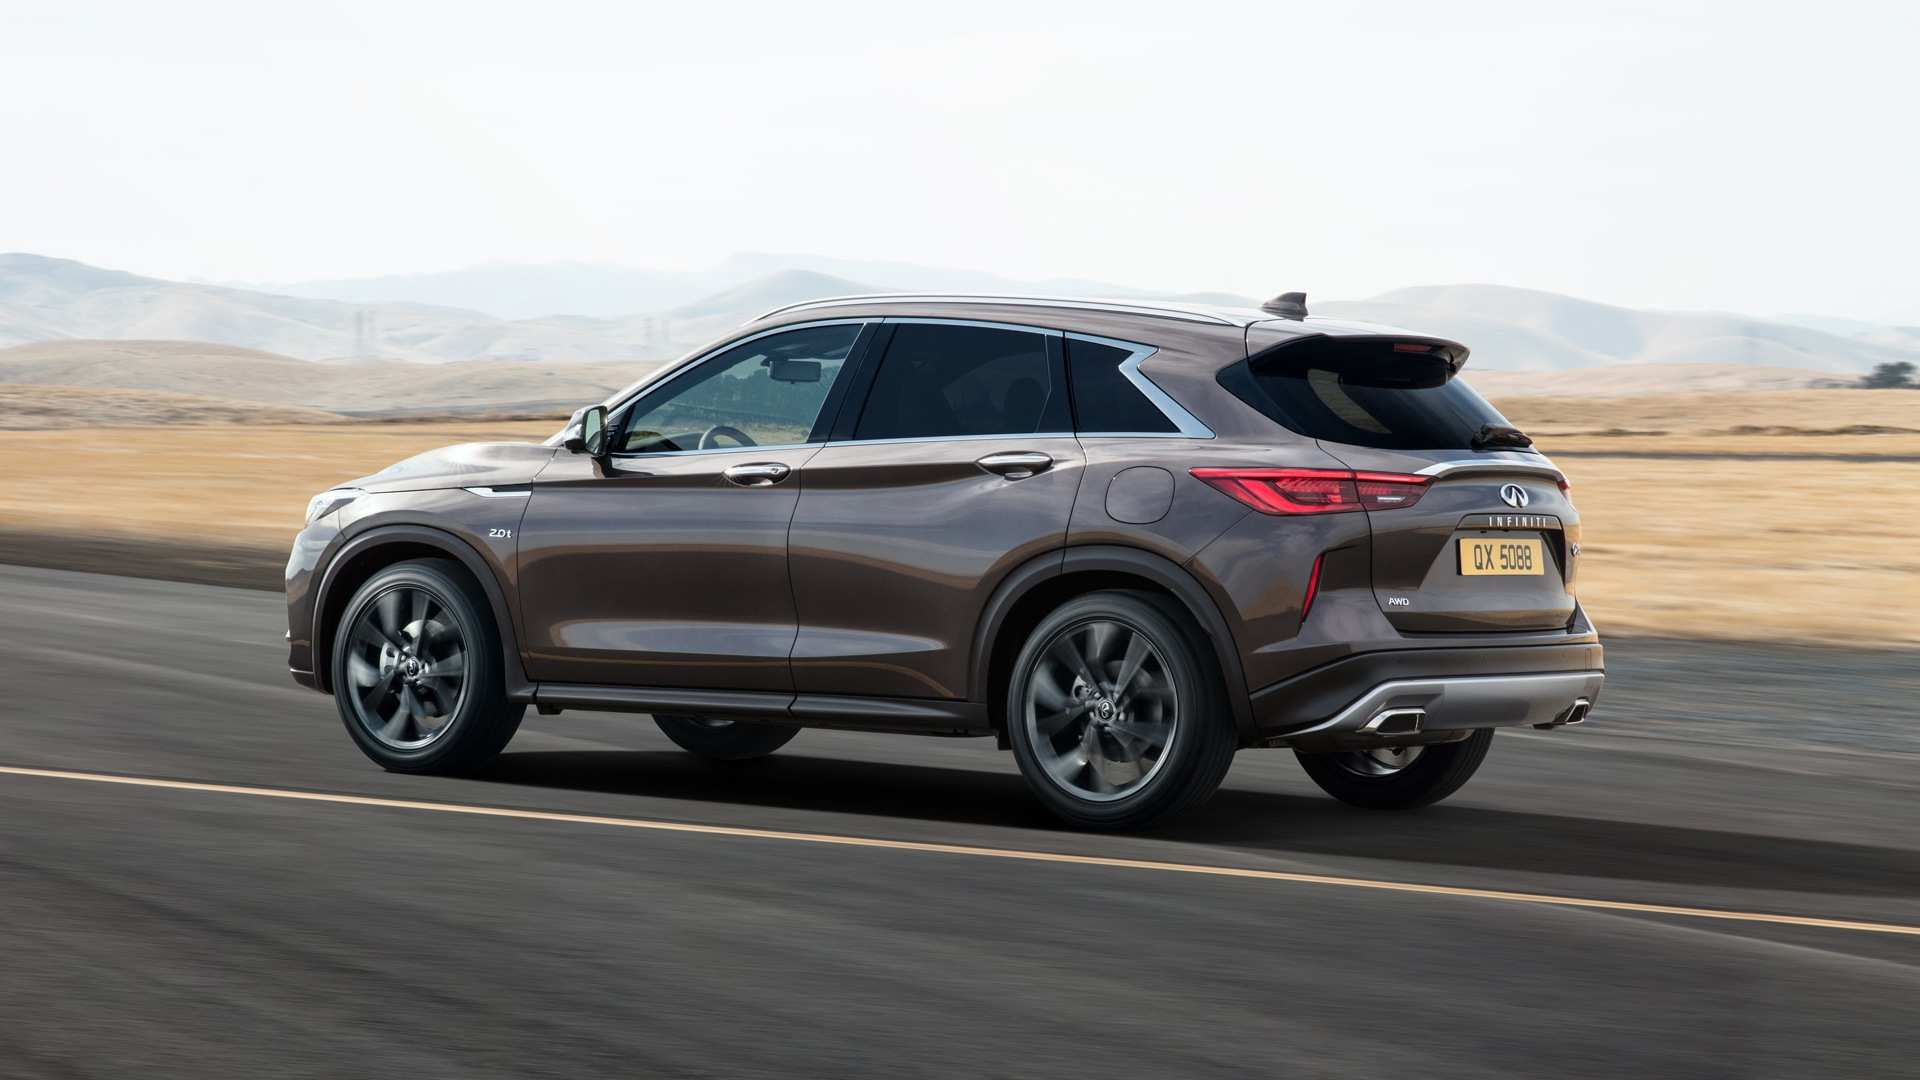 56 All New 2019 Infiniti QX50 Review